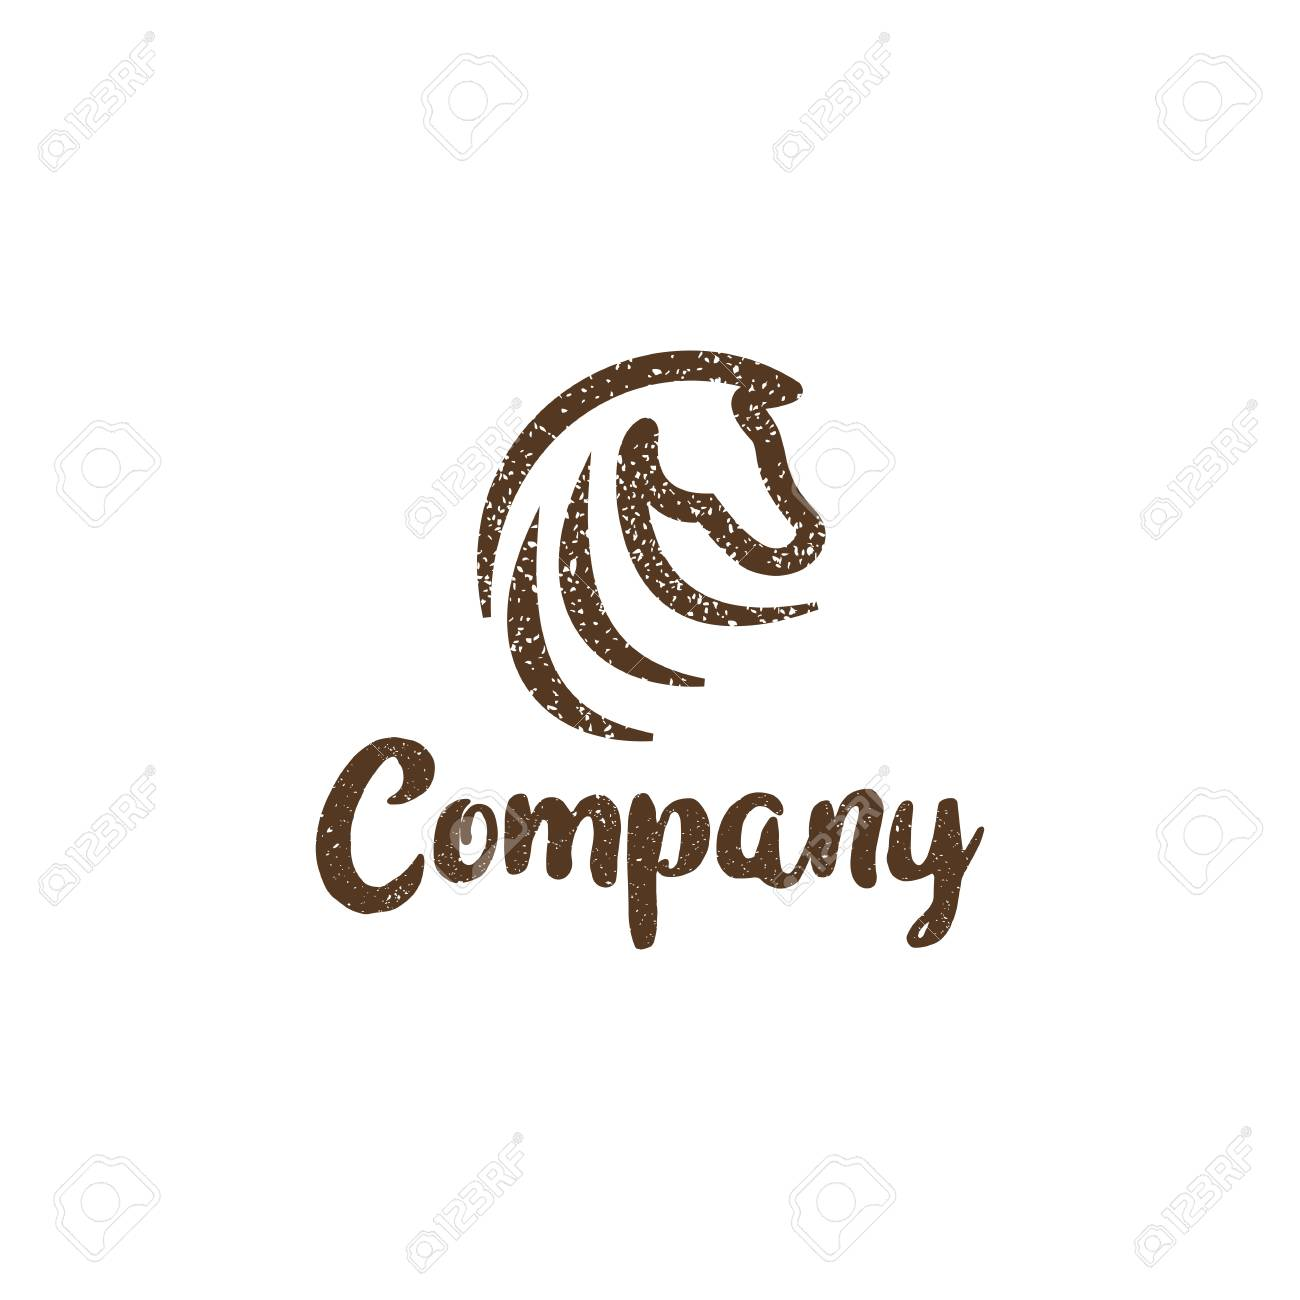 Grunge Abstract Horse Logo Amazing Design For Your Company Or Royalty Free Cliparts Vectors And Stock Illustration Image 118701348